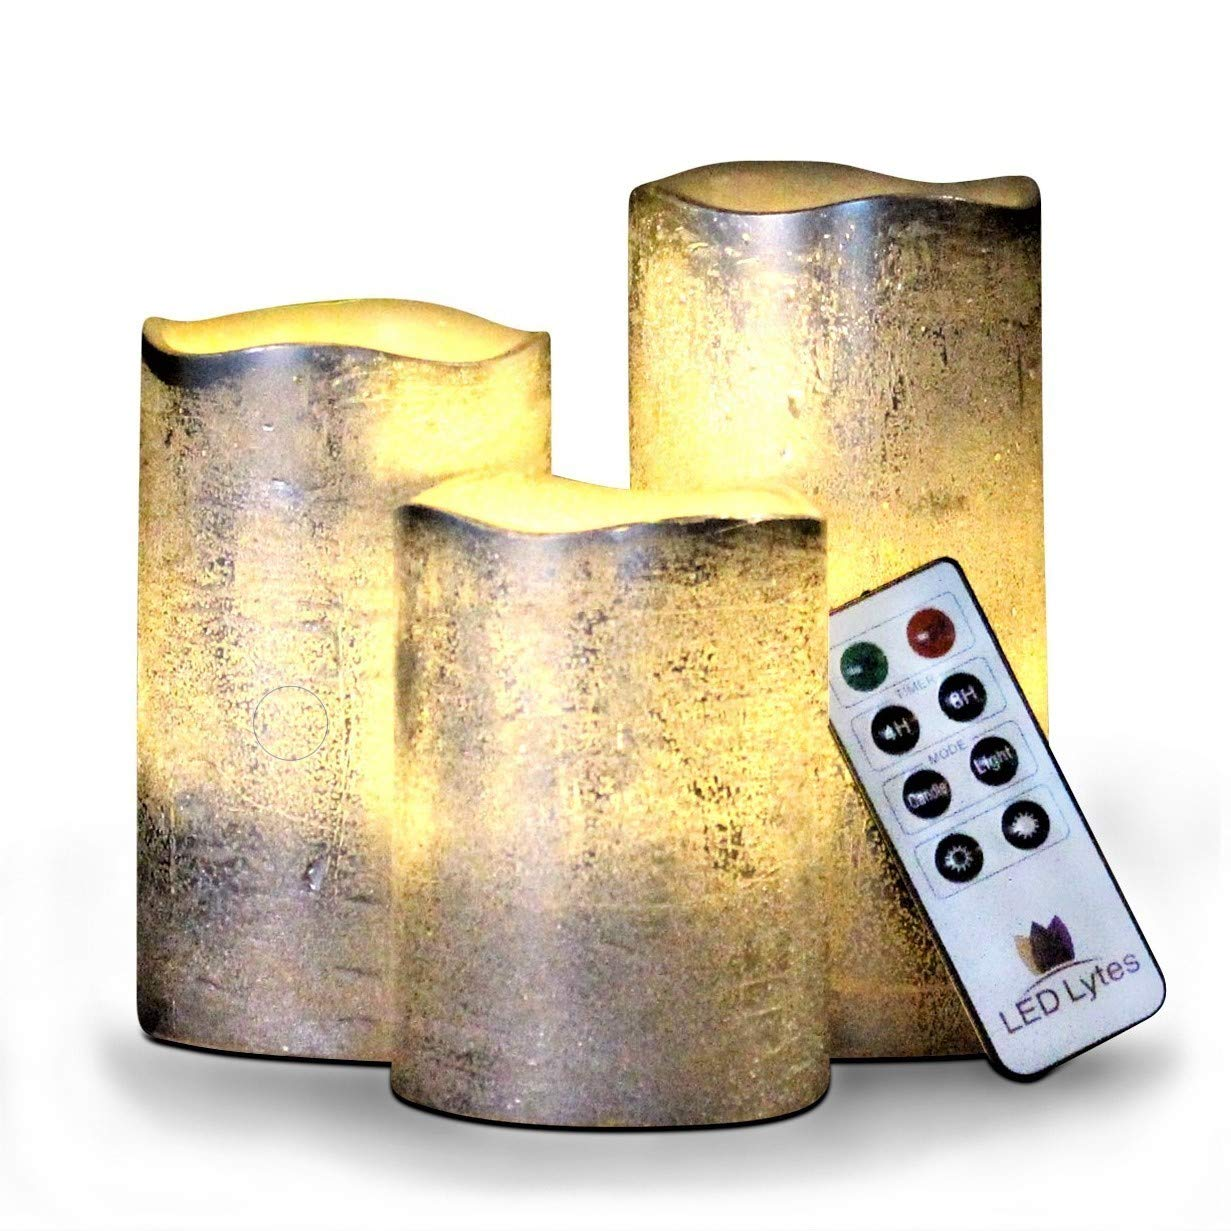 Battery Operated LED Flameless Candles - Set of 3 Round Rustic Silver Coated Ivory Wax with Warm White Flame Flickering LED Candles, auto-Off Timer Remote Control by LED Lytes by LED Lytes (Image #8)